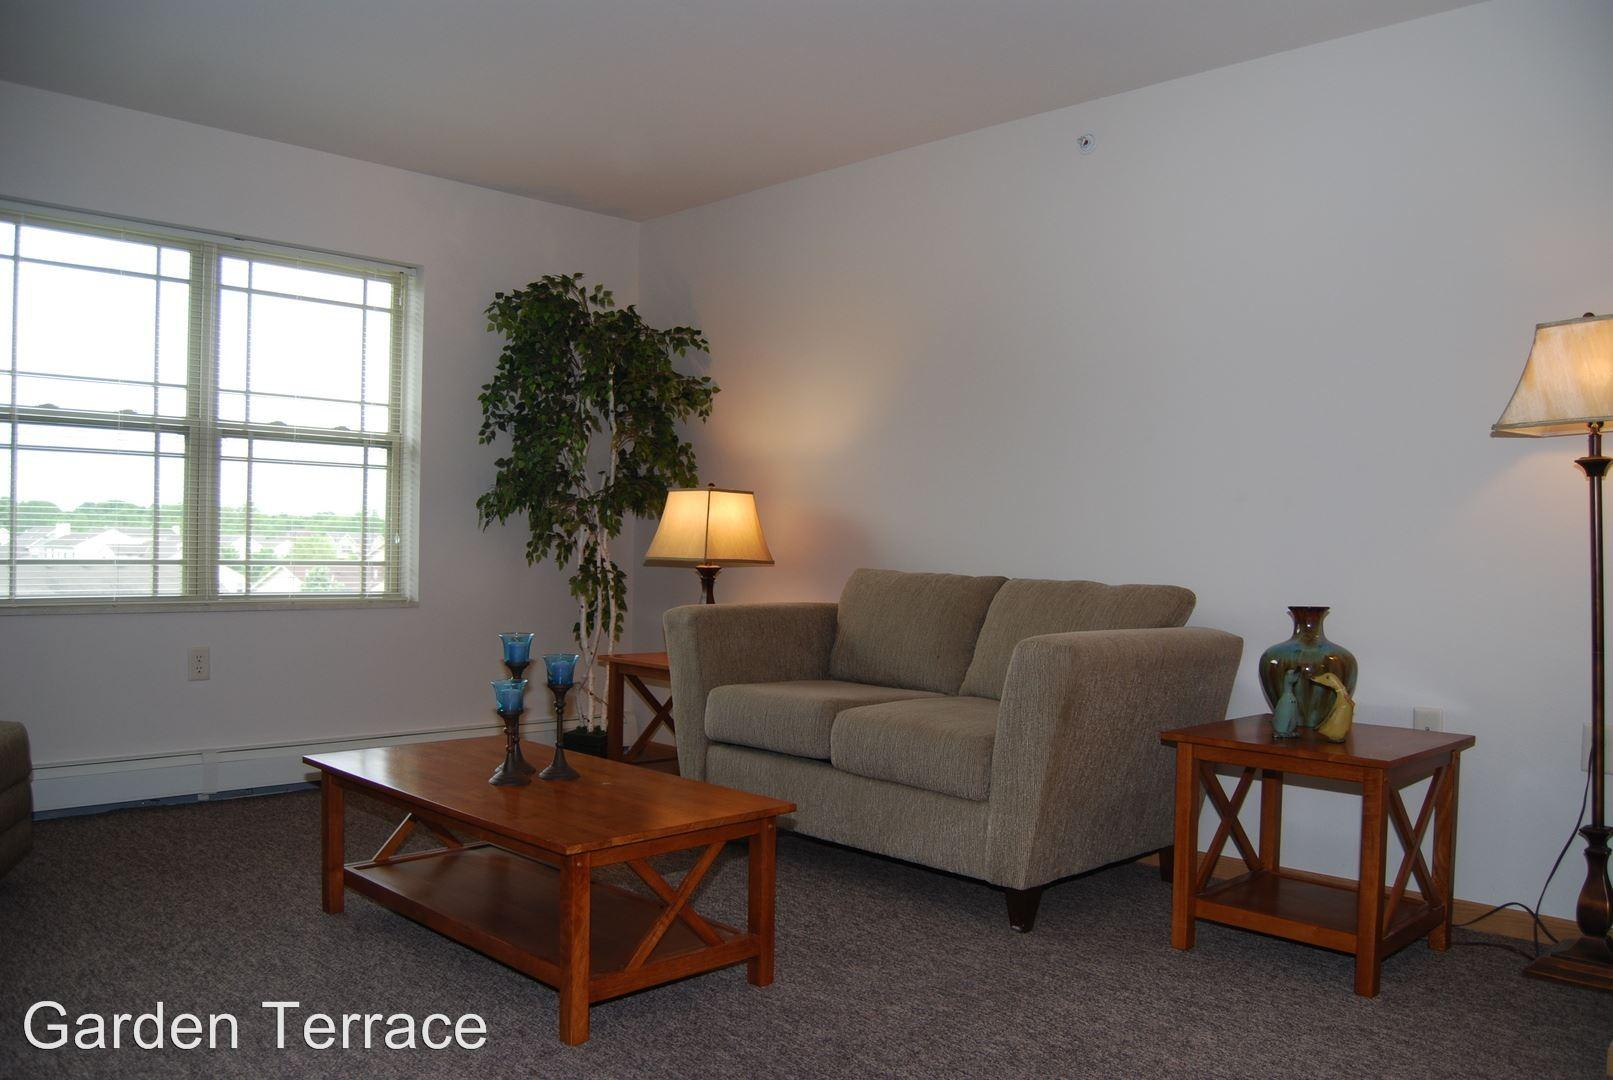 Garden terrace 10851 w donna drive apartments milwaukee 1 bedroom apartments in milwaukee wi